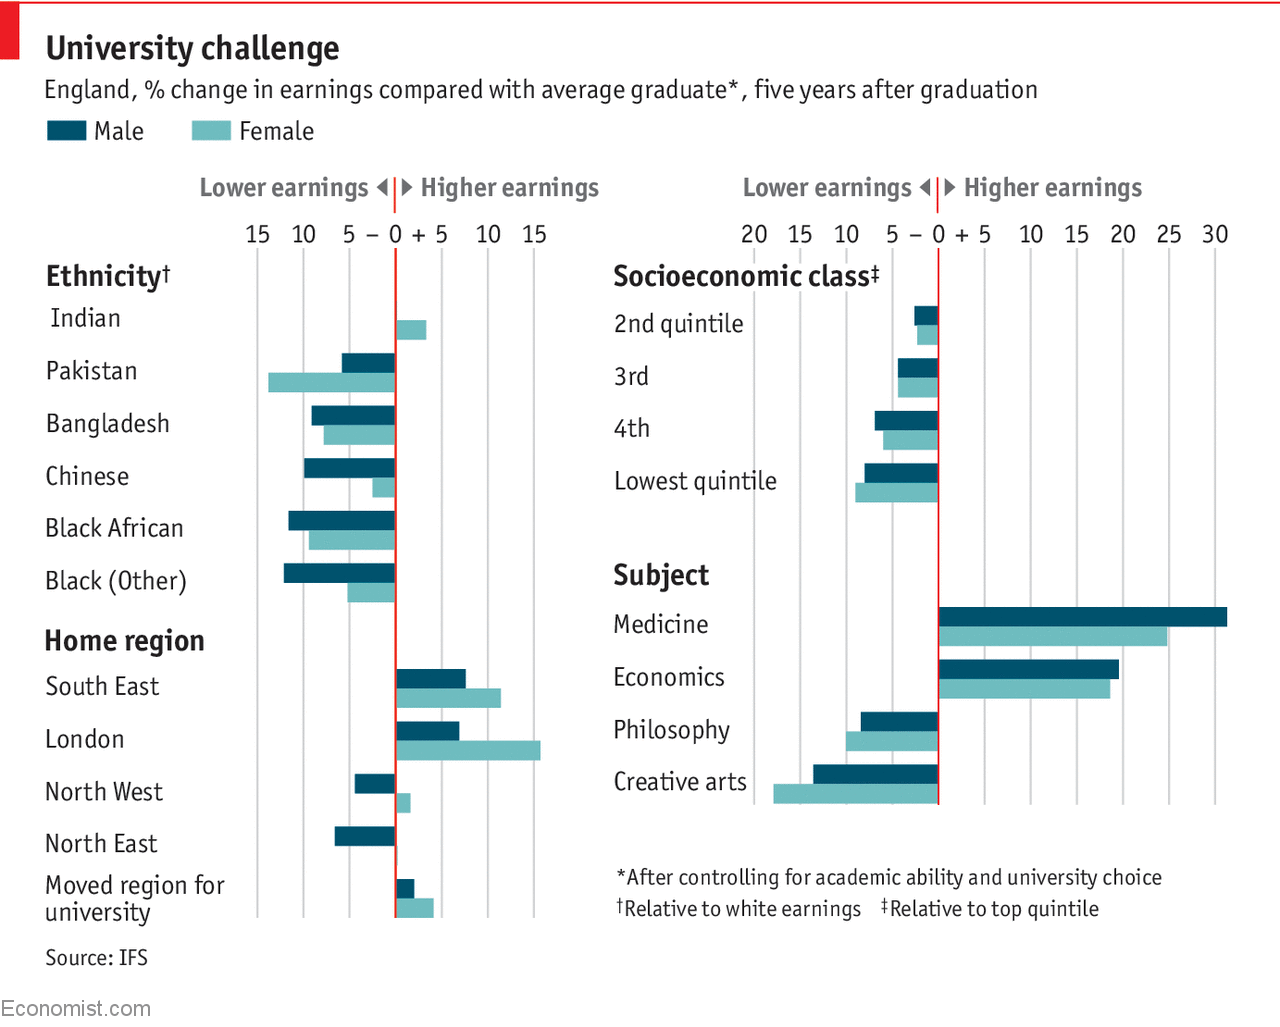 Which traits predict graduates' earnings?